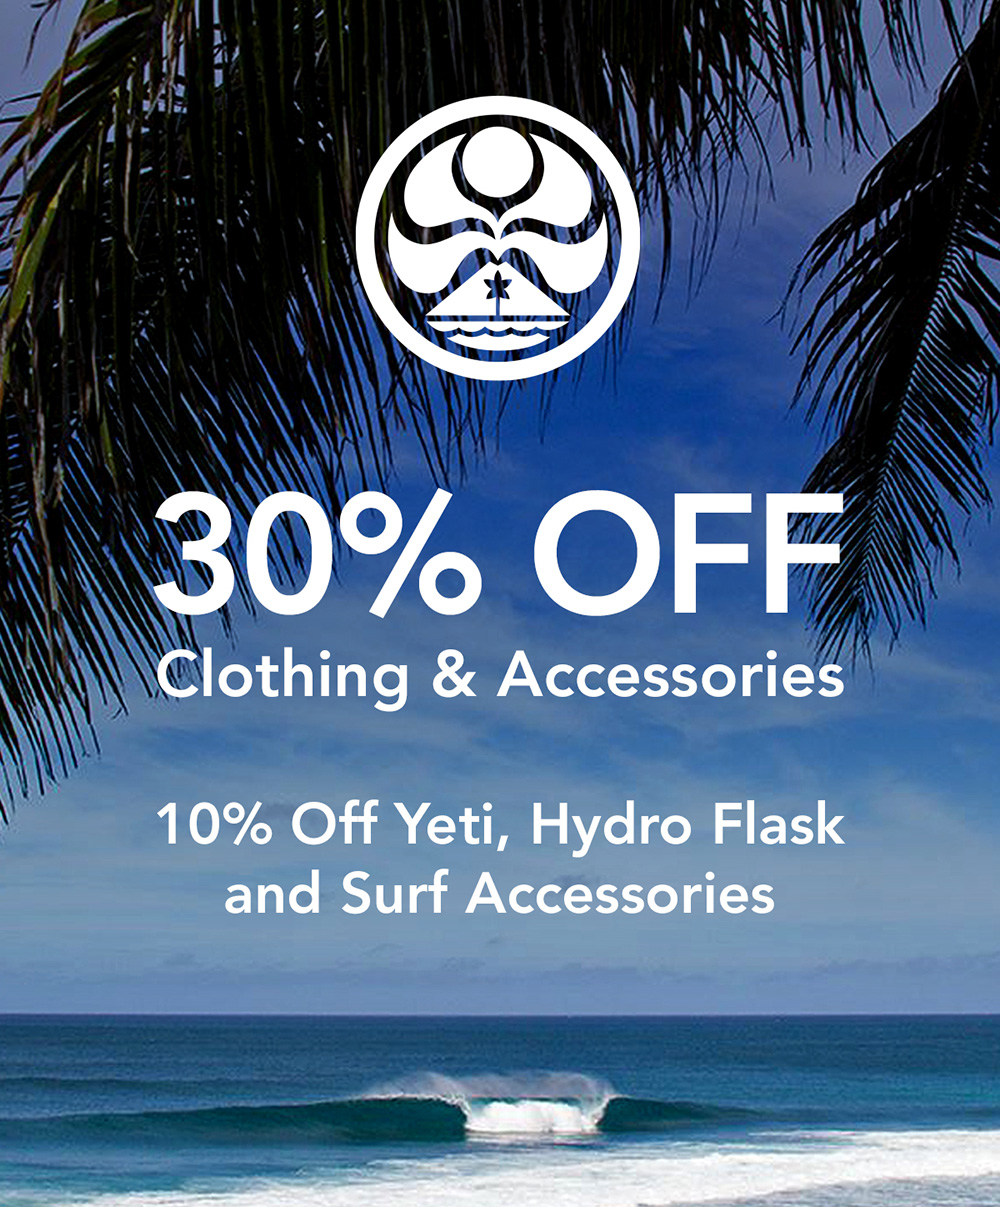 Store Opening Specials from Hawaiian Island Creations